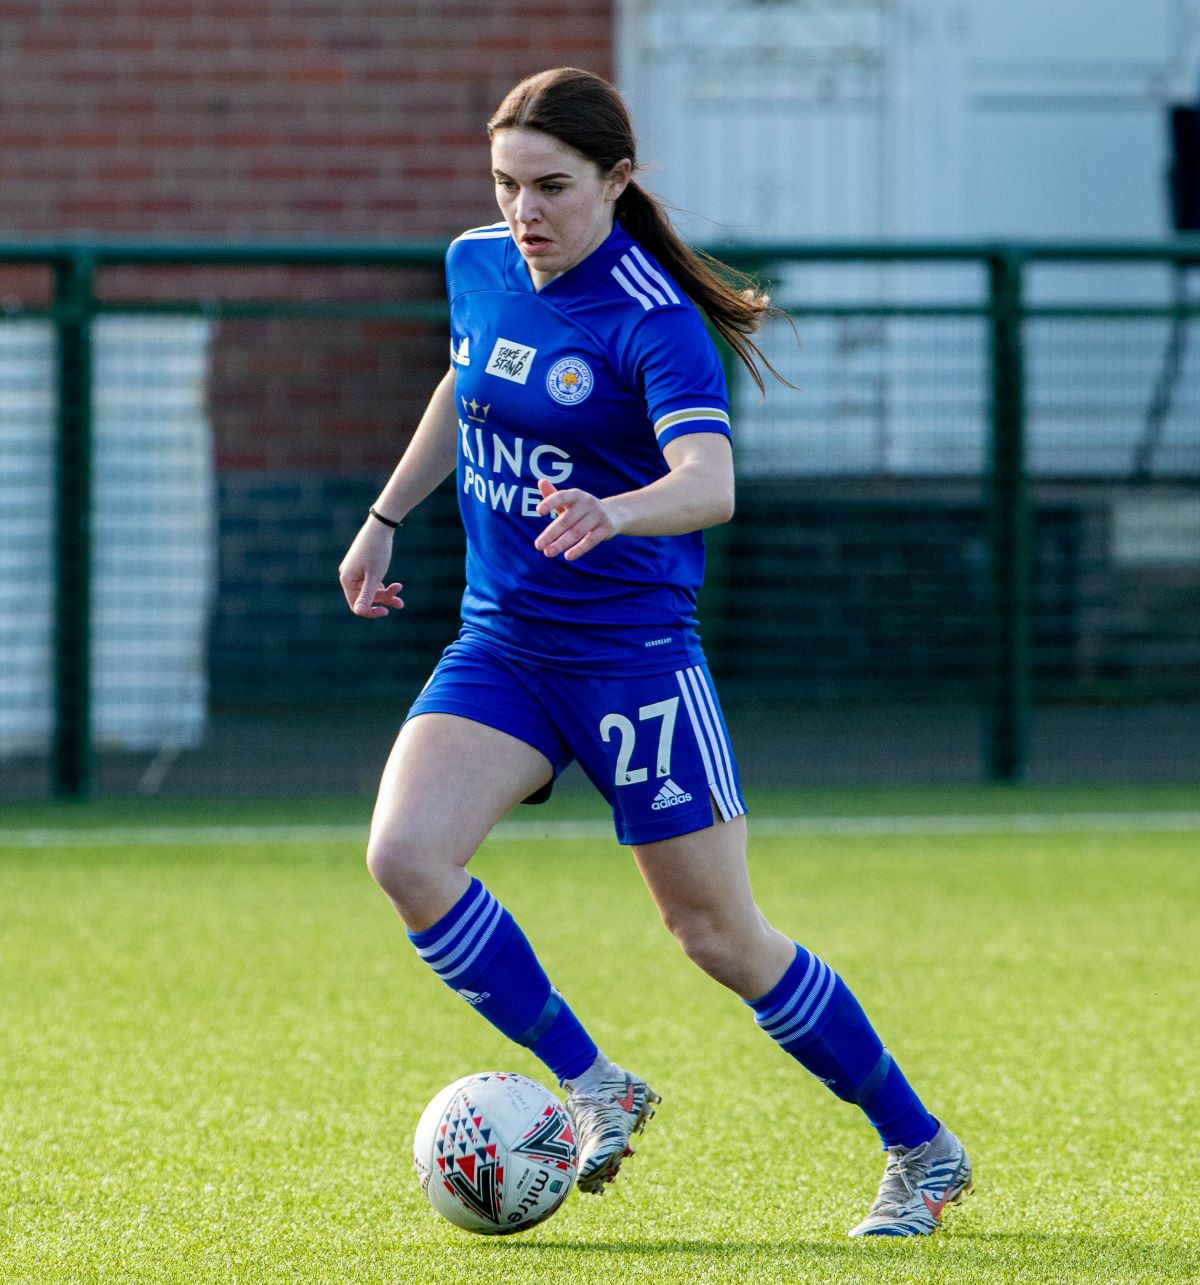 Leicester City's two-goal Shannon O'Brien